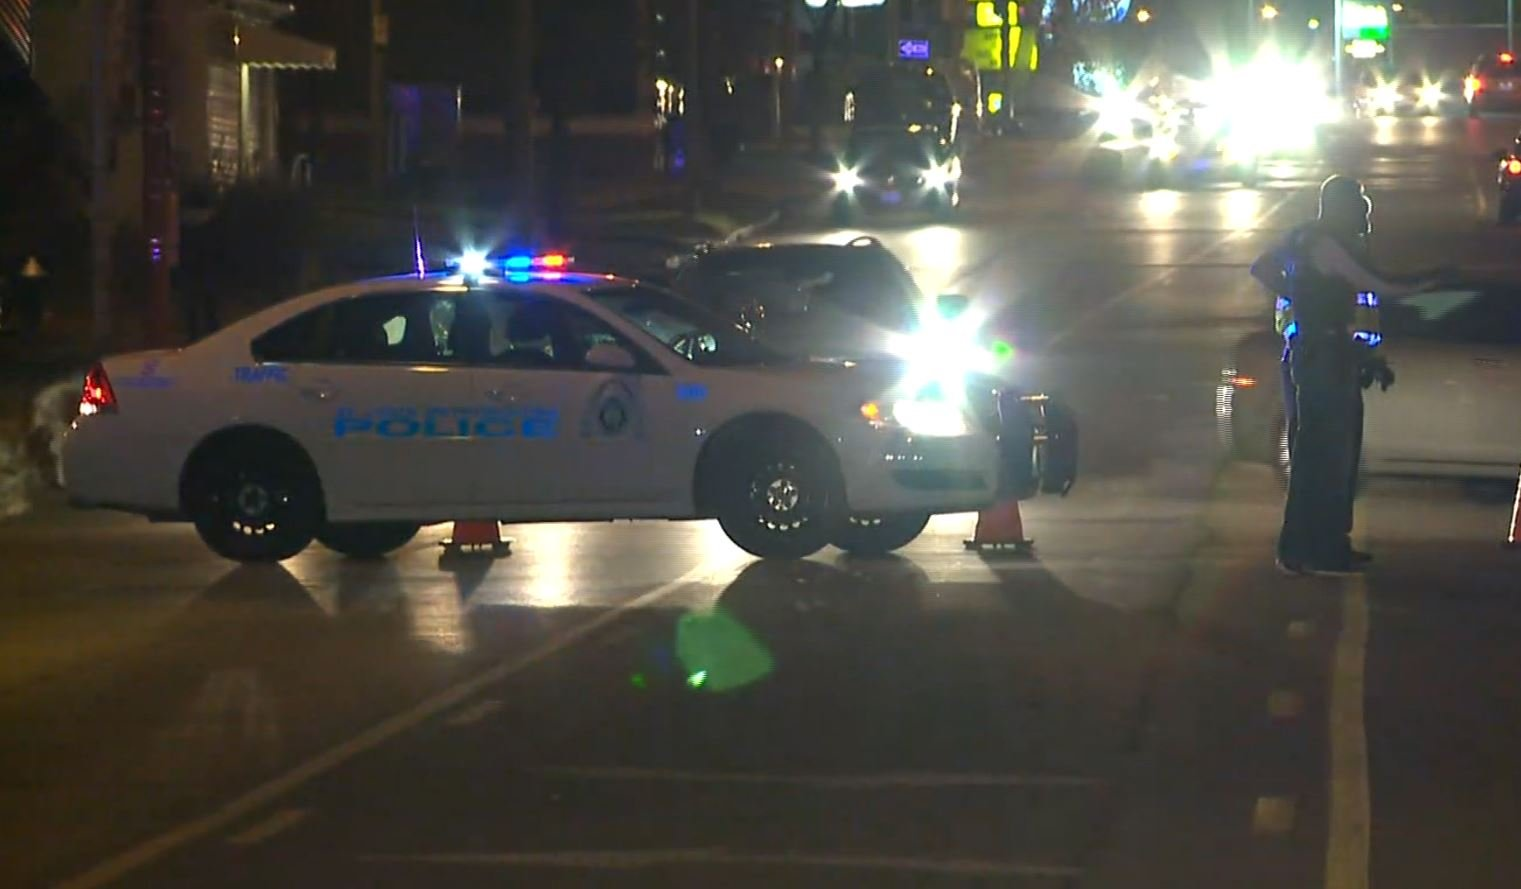 Police had Hampton closed at Pernod for hours Sunday evening (Credit: KMOV)